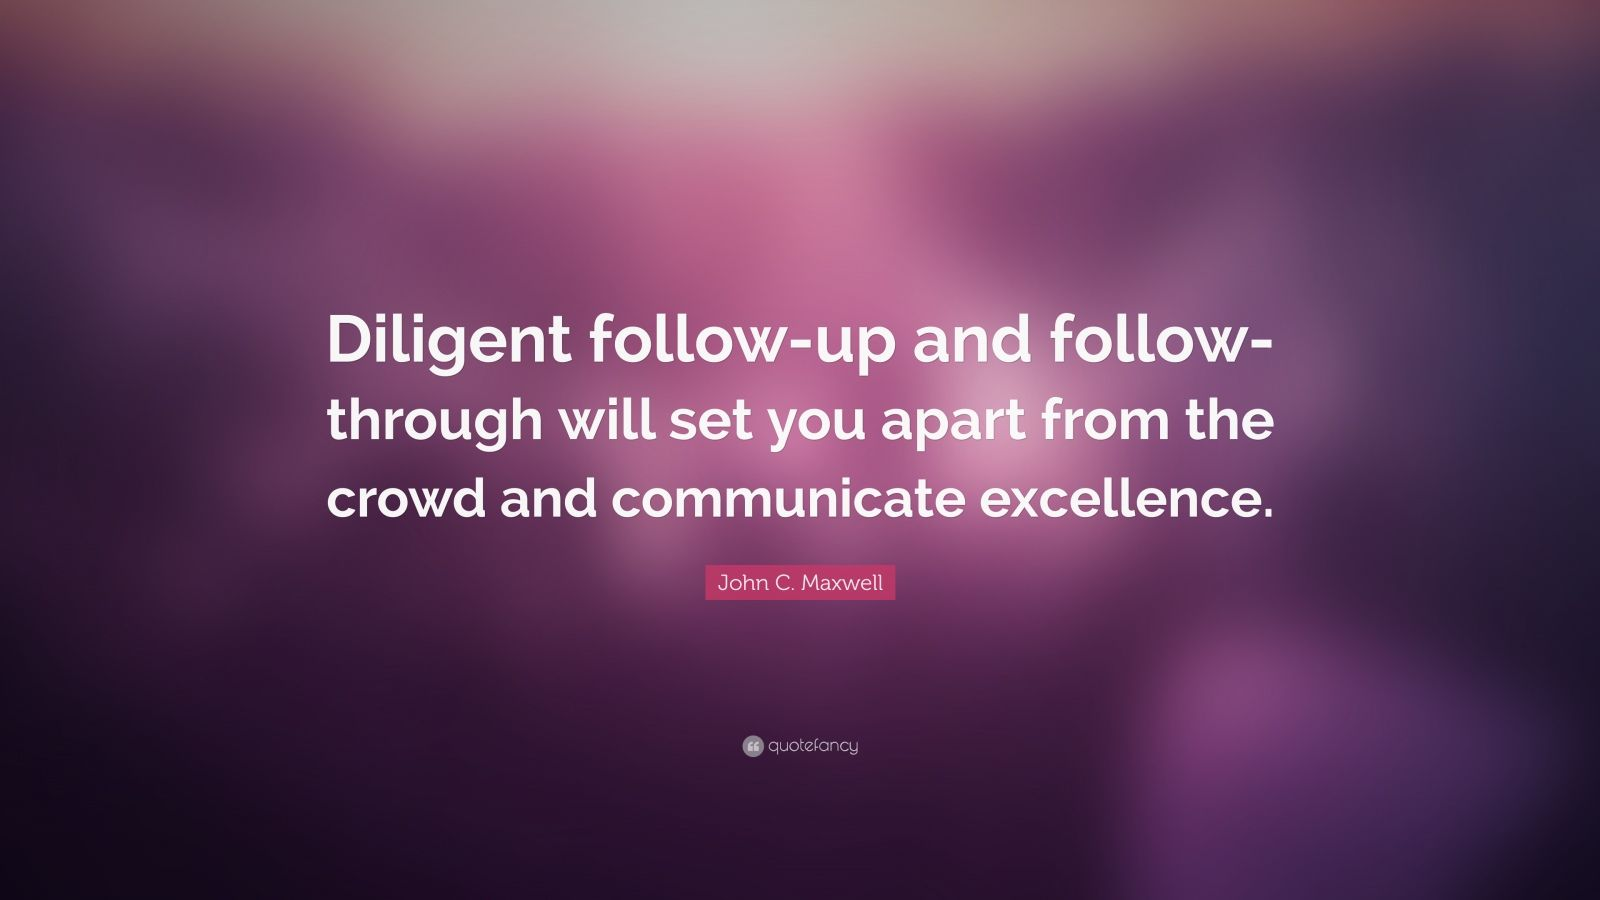 Beautiful Wallpapers With Inspirational Quotes John C Maxwell Quote Diligent Follow Up And Follow